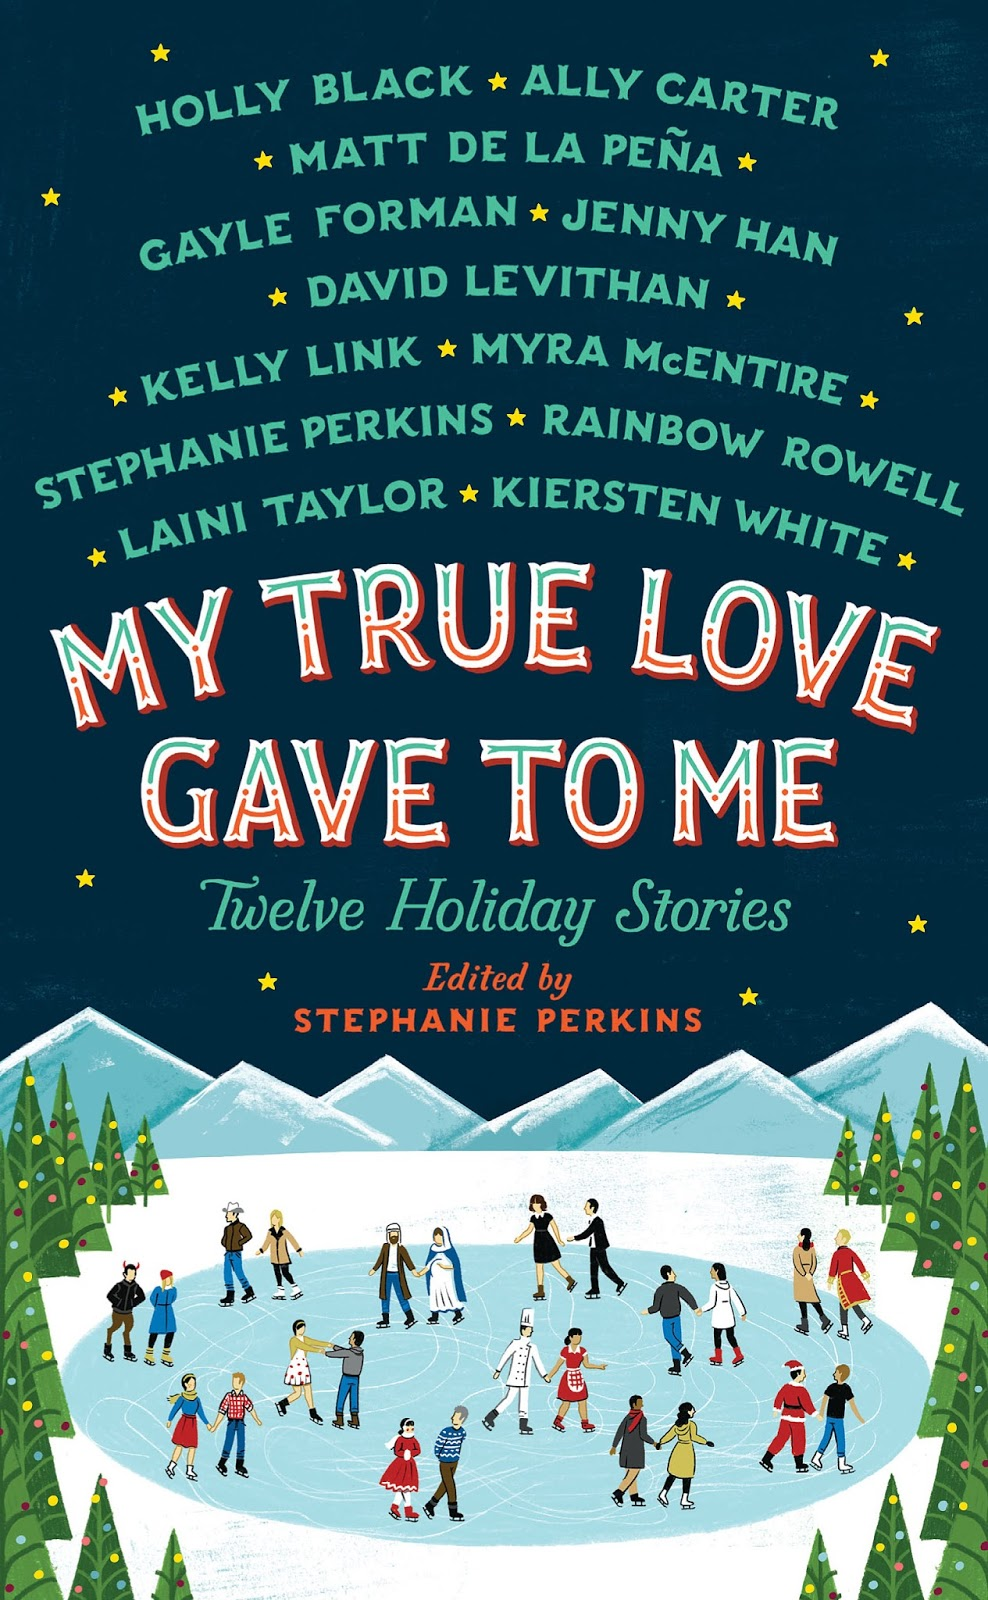 My True Love Gave To Me Holiday Stories Stephanie Perkins Cover